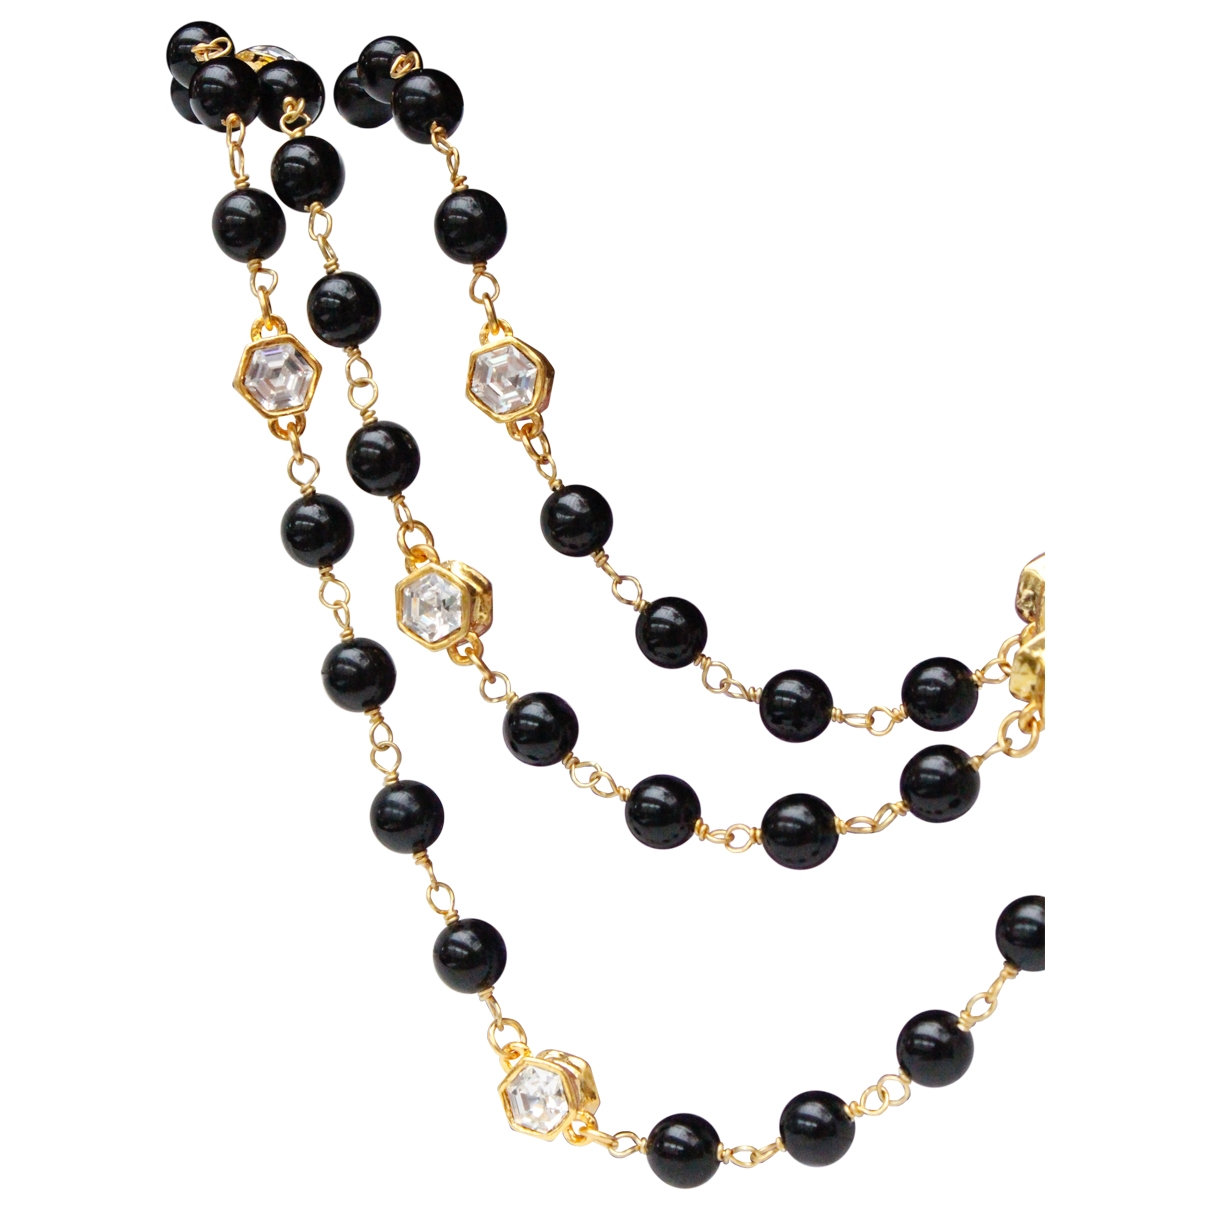 Chanel \N Black Pearls Long necklace for Women \N